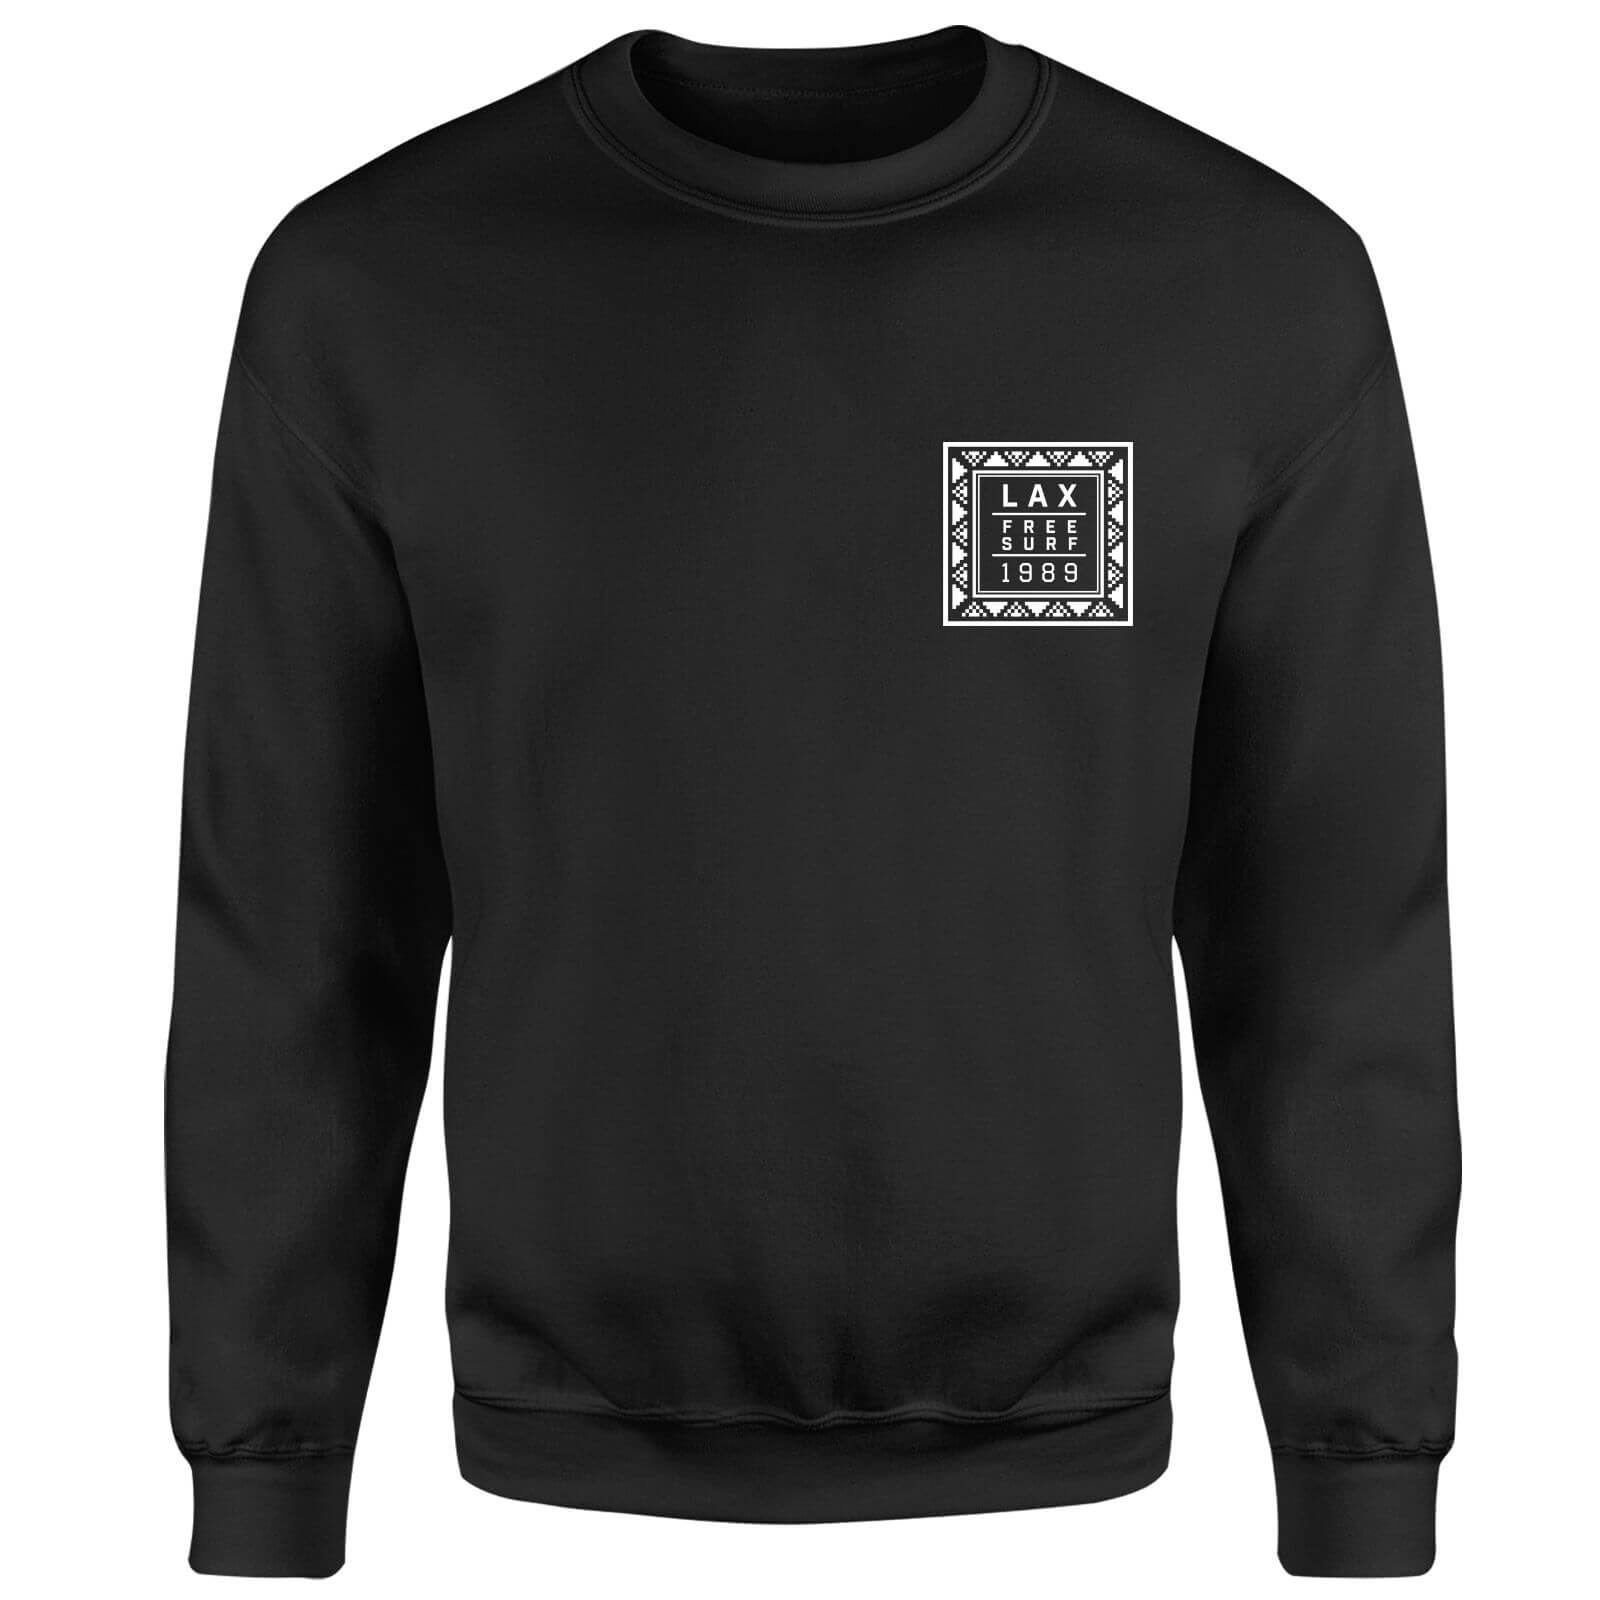 Native Shore Lax Free Surf Sweatshirt - Black